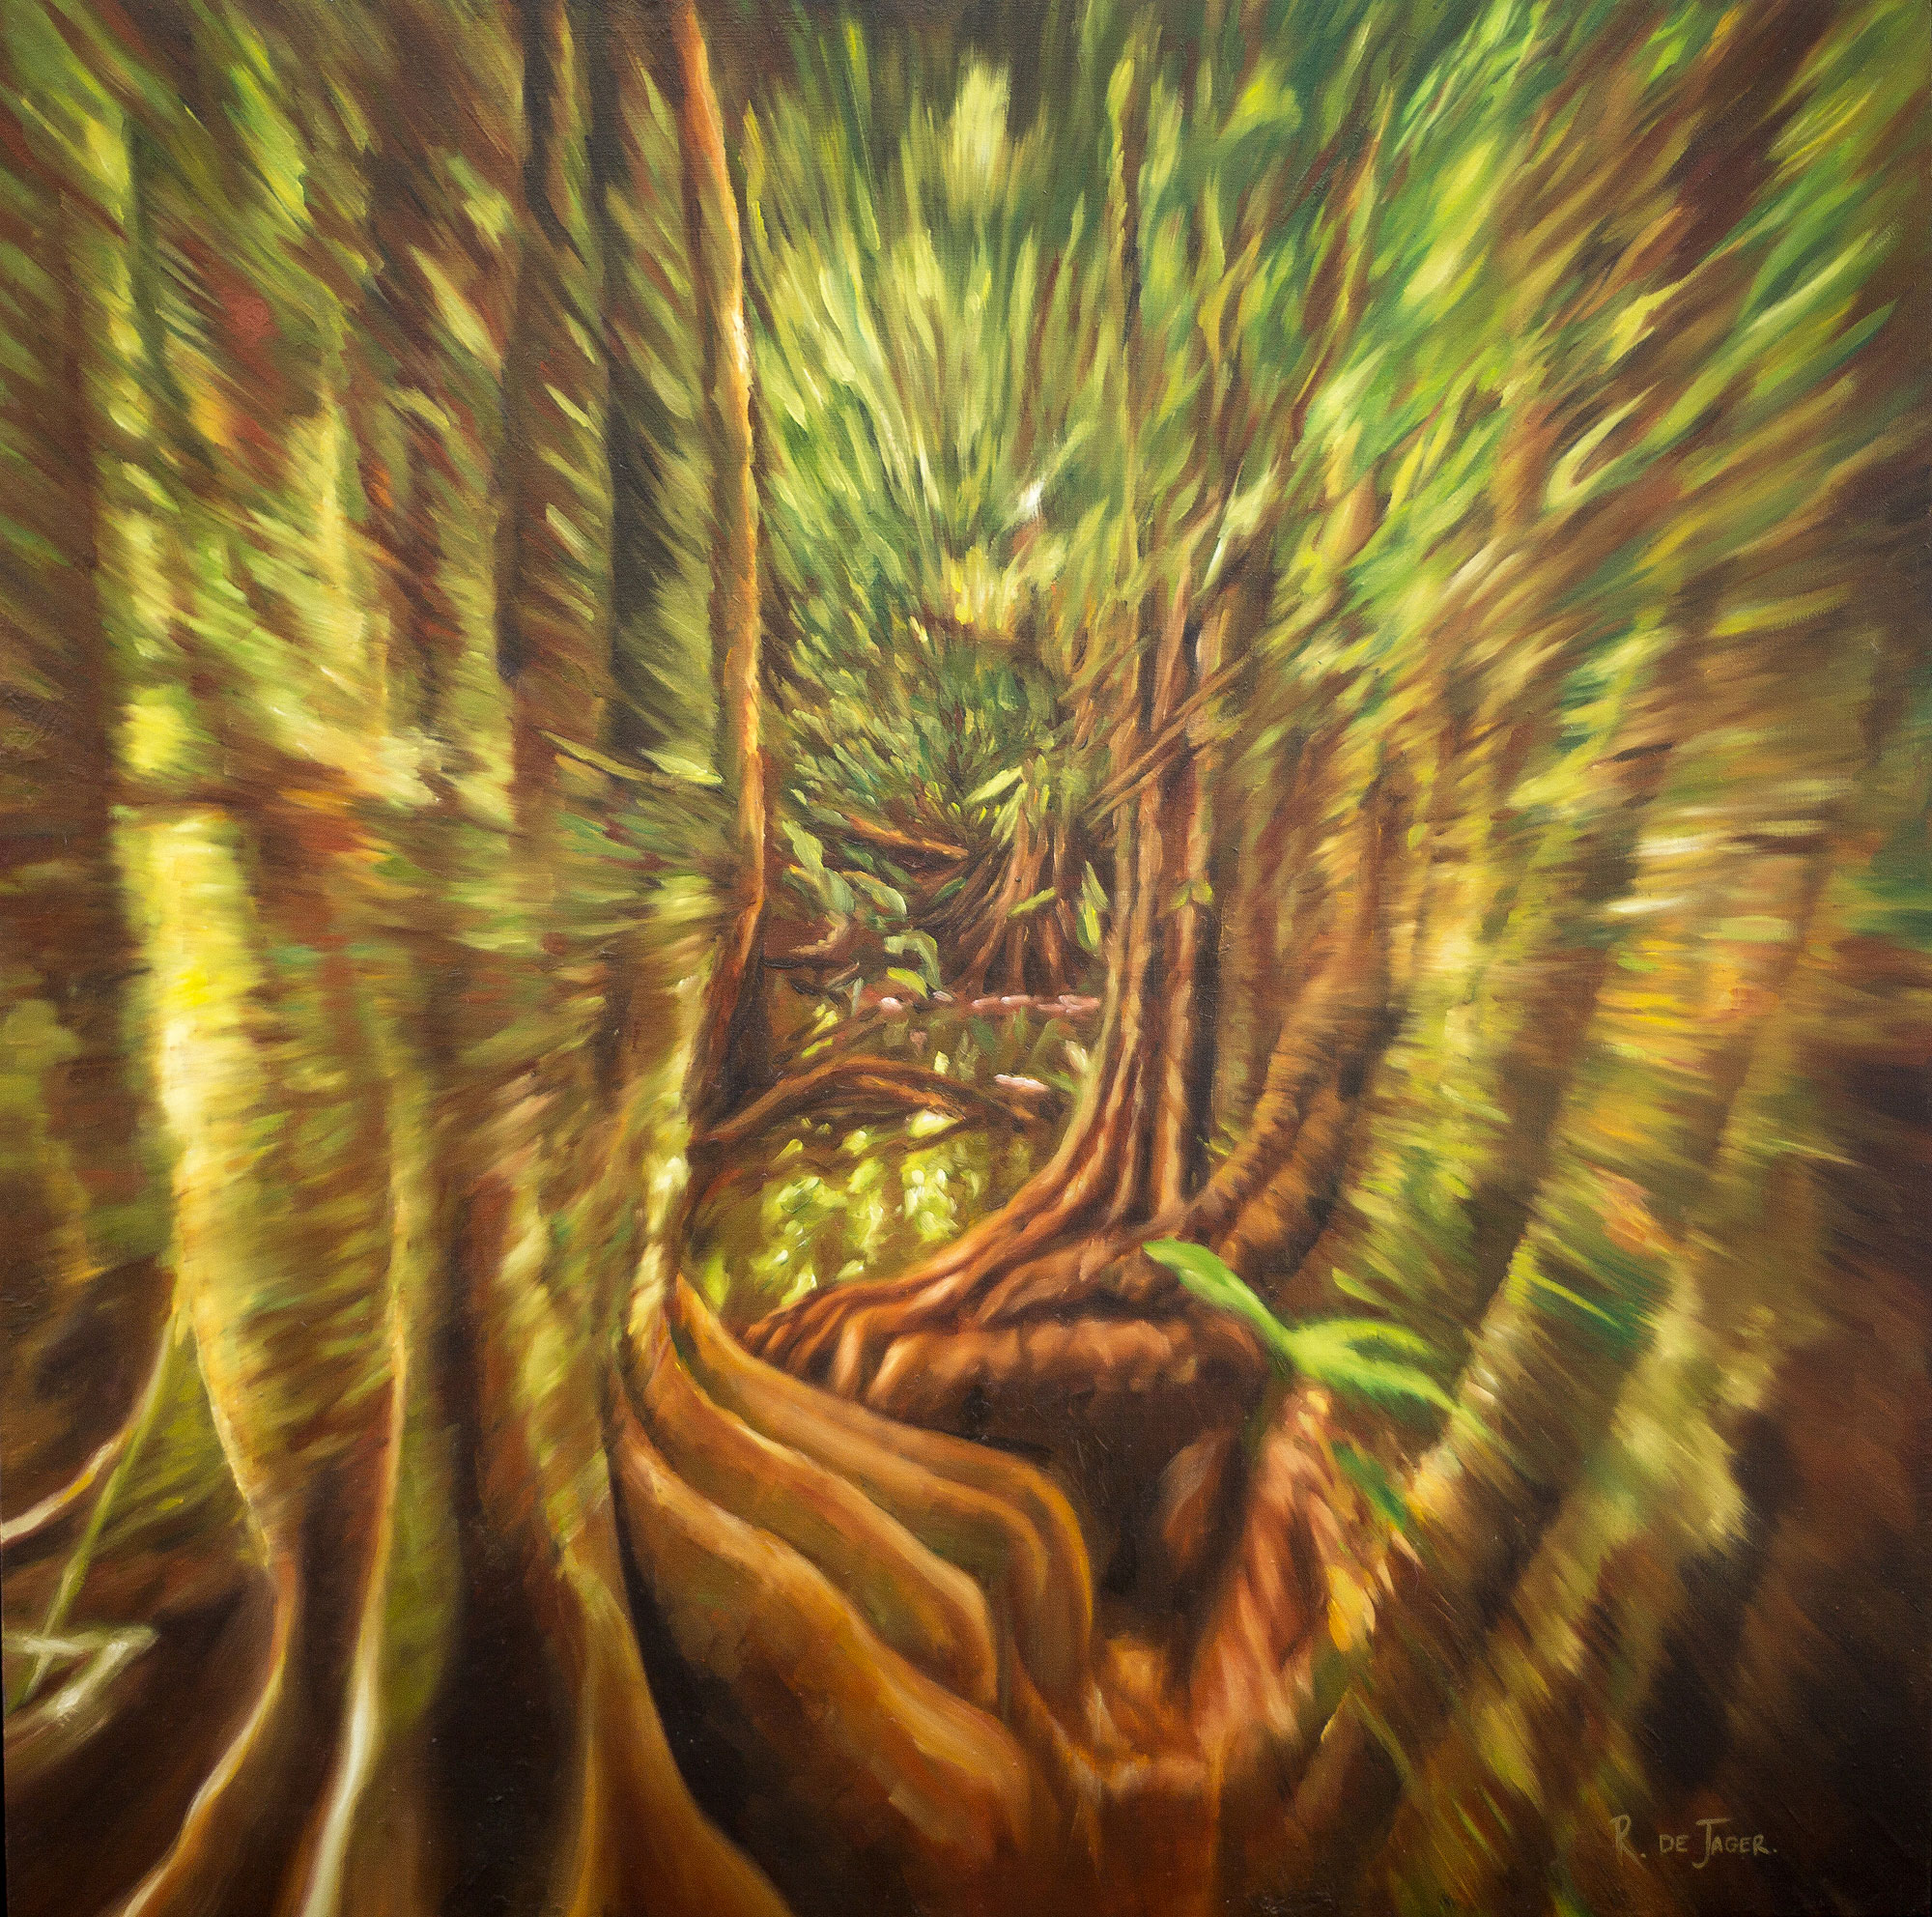 ' Welcome to Your Jungle (Series) '   Ronél de Jager  Oil & Mixed media on board  500 x 500 x 55 mm  R 10 000.00 each excl. vat (each)